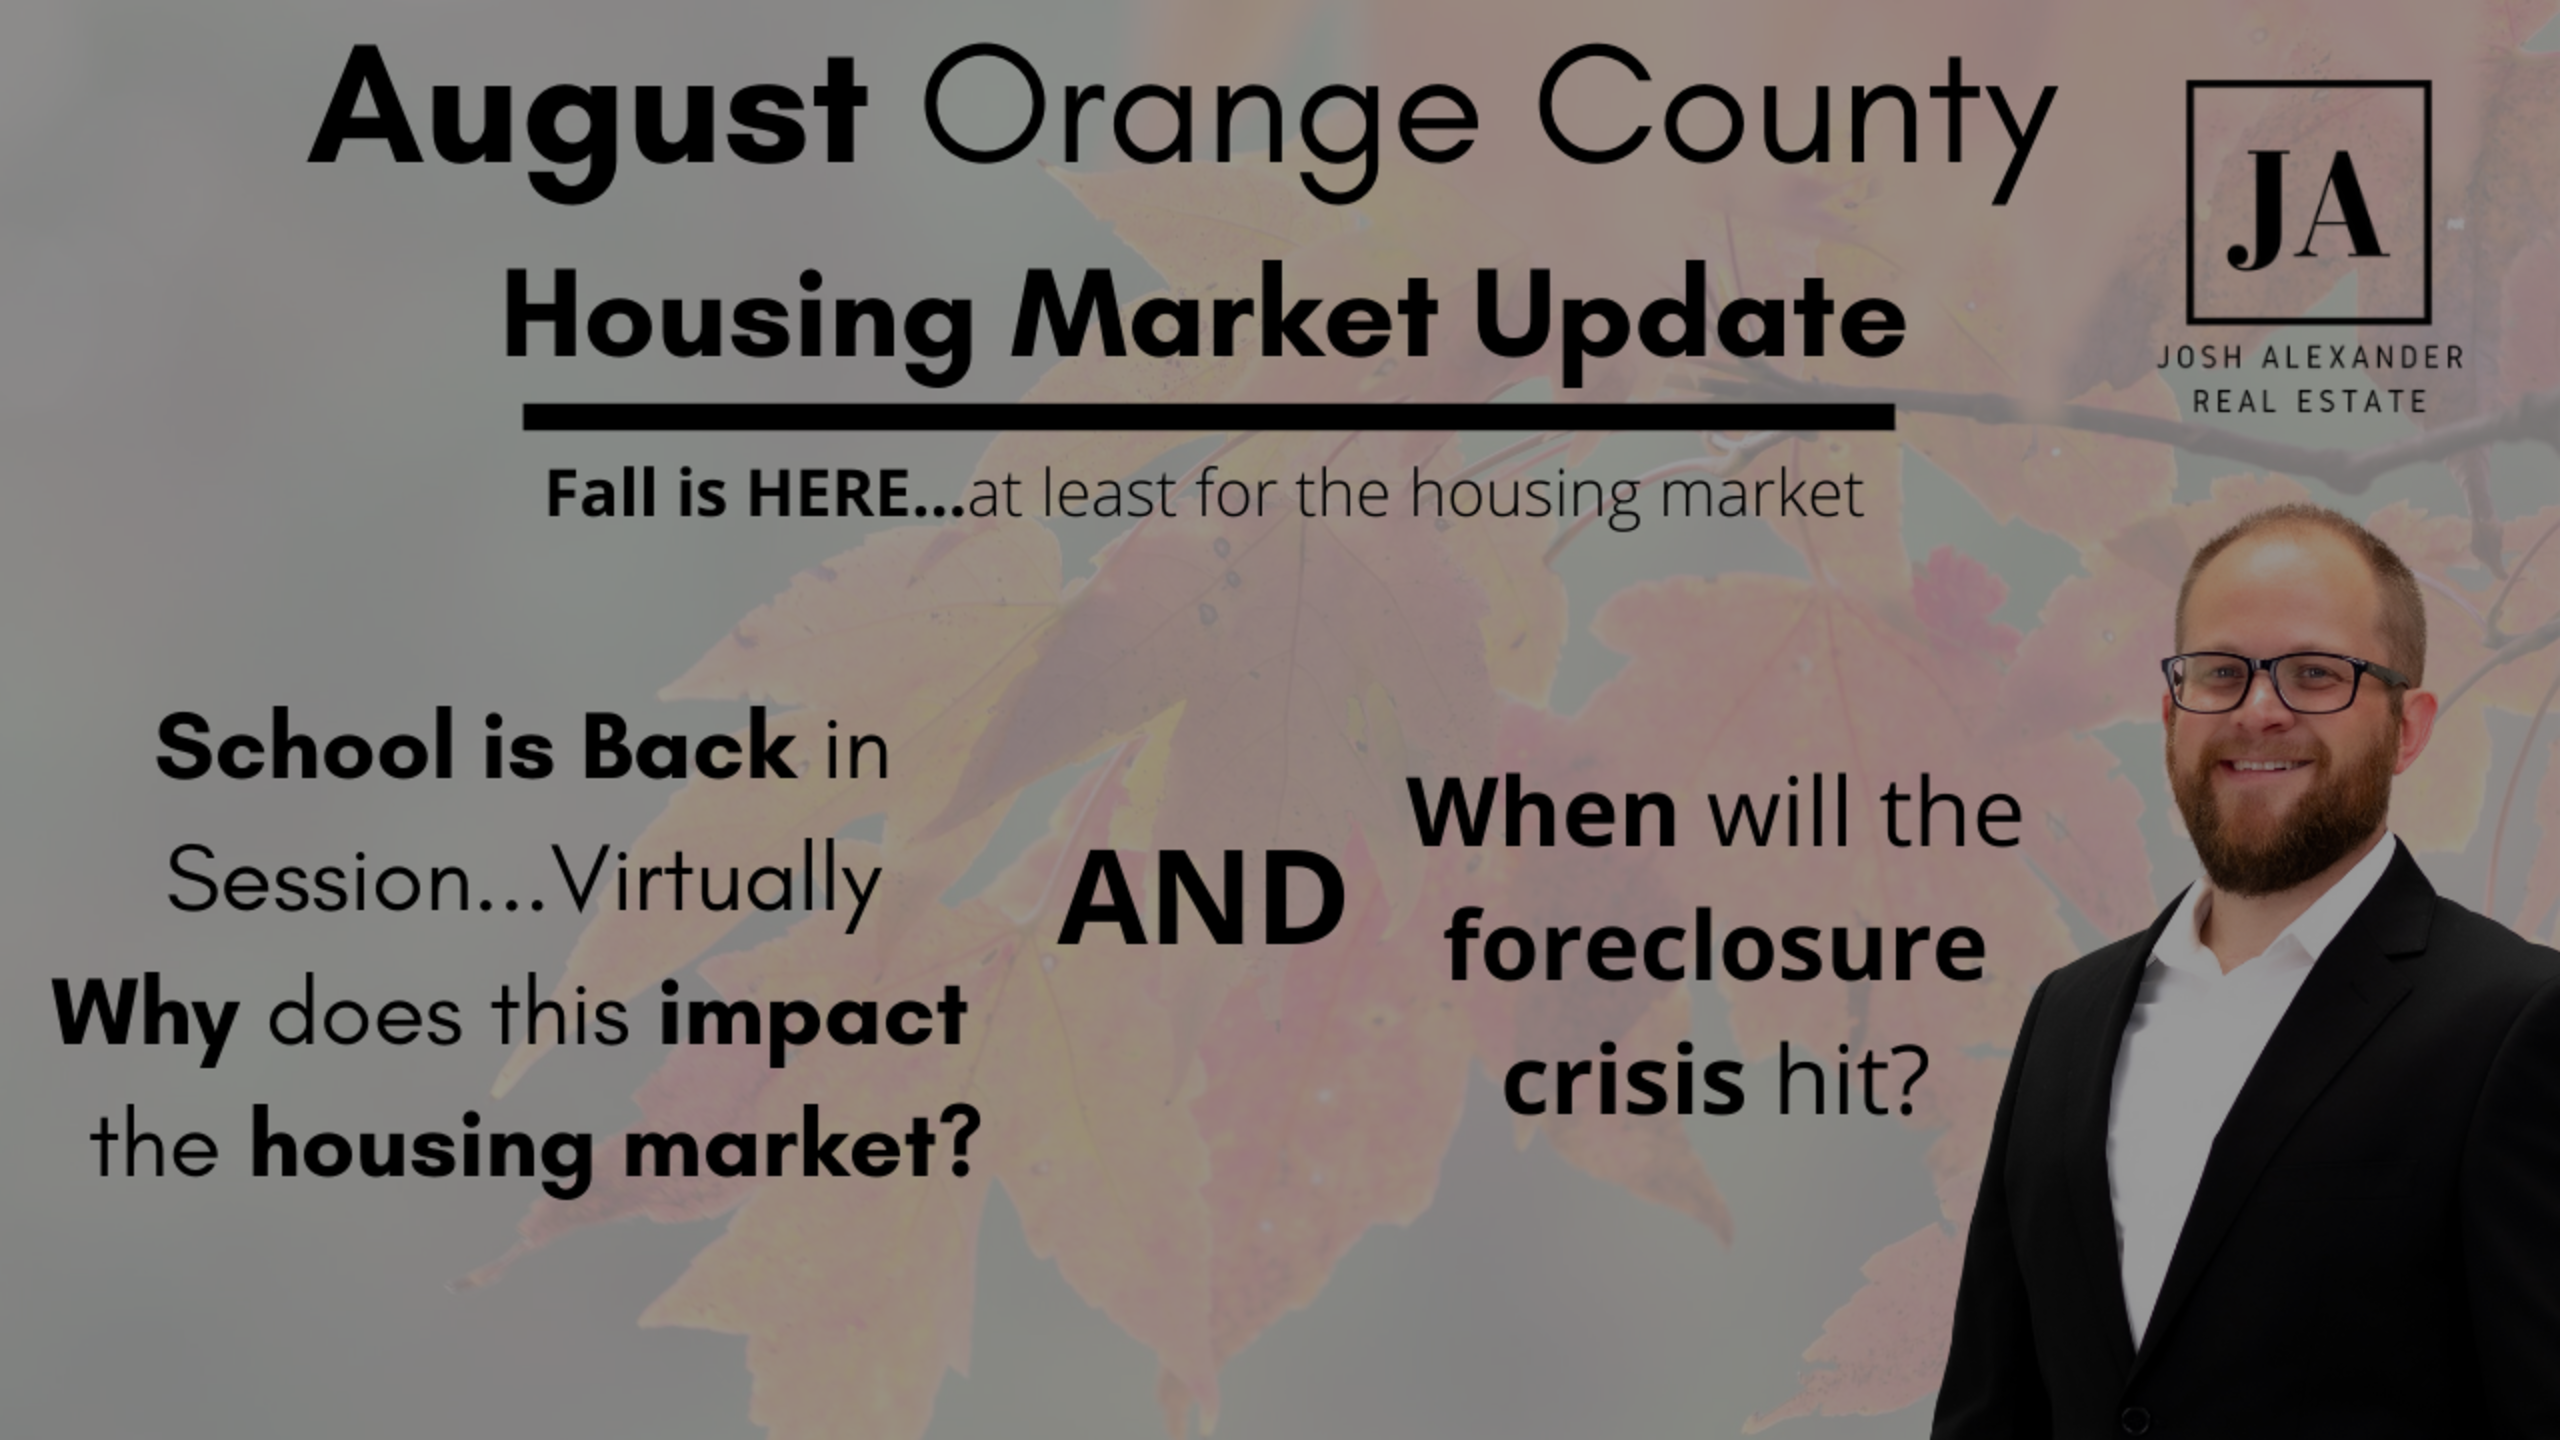 August Orange County Housing Market Update